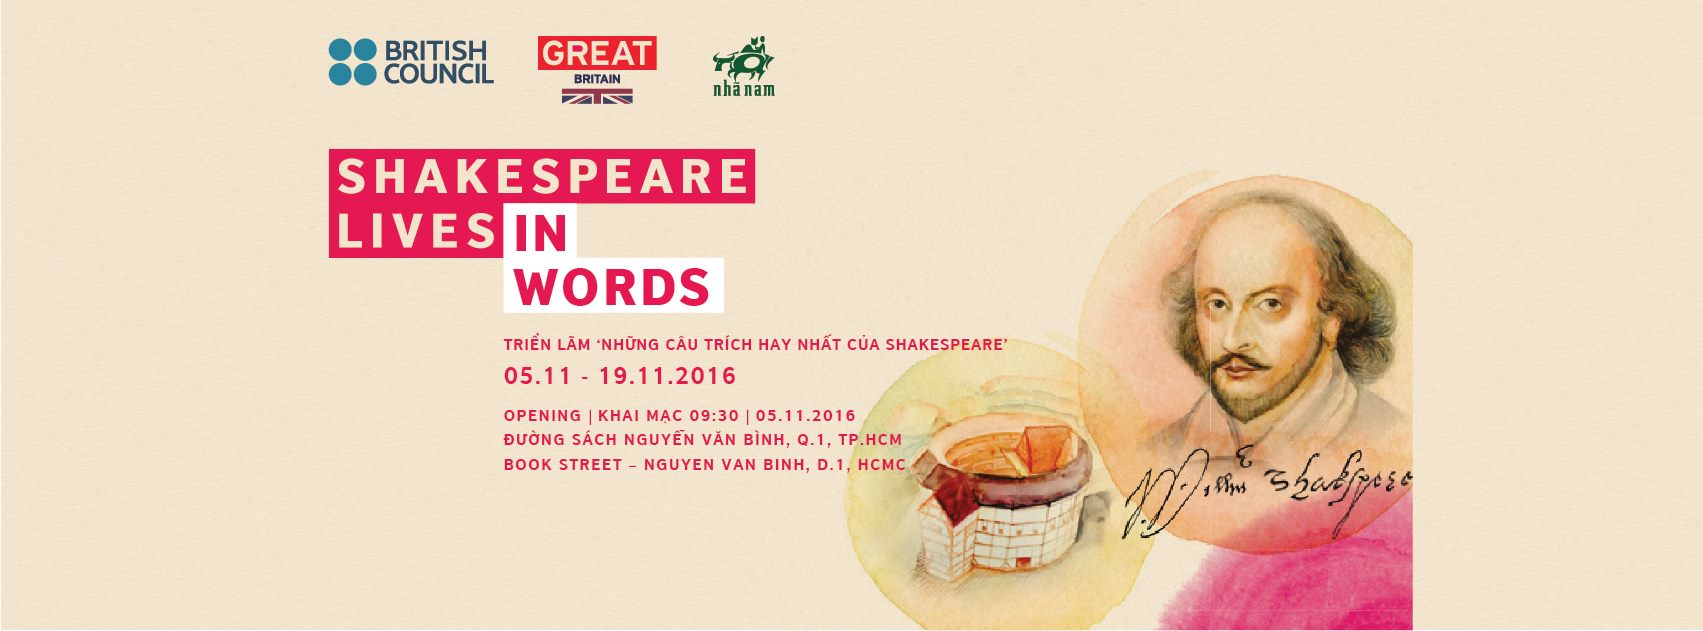 "SHAKESPEARE LIVES IN WORDS: Triển lãm ""Những câu trích hay của Shakespeare"""